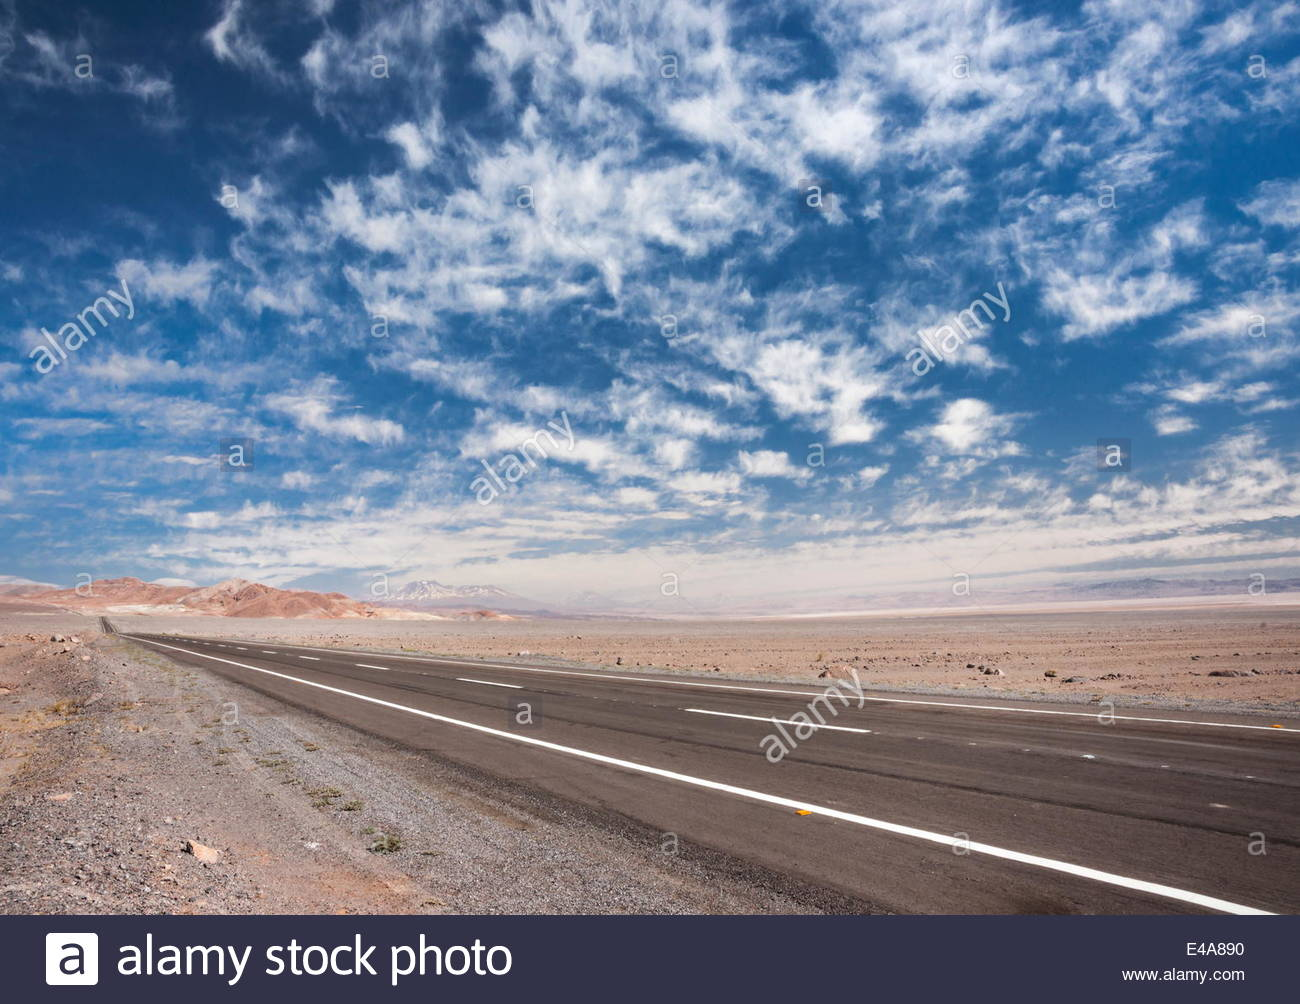 Open paved road with no traffic in Atacama Desert, Chile, South America Stock Photo